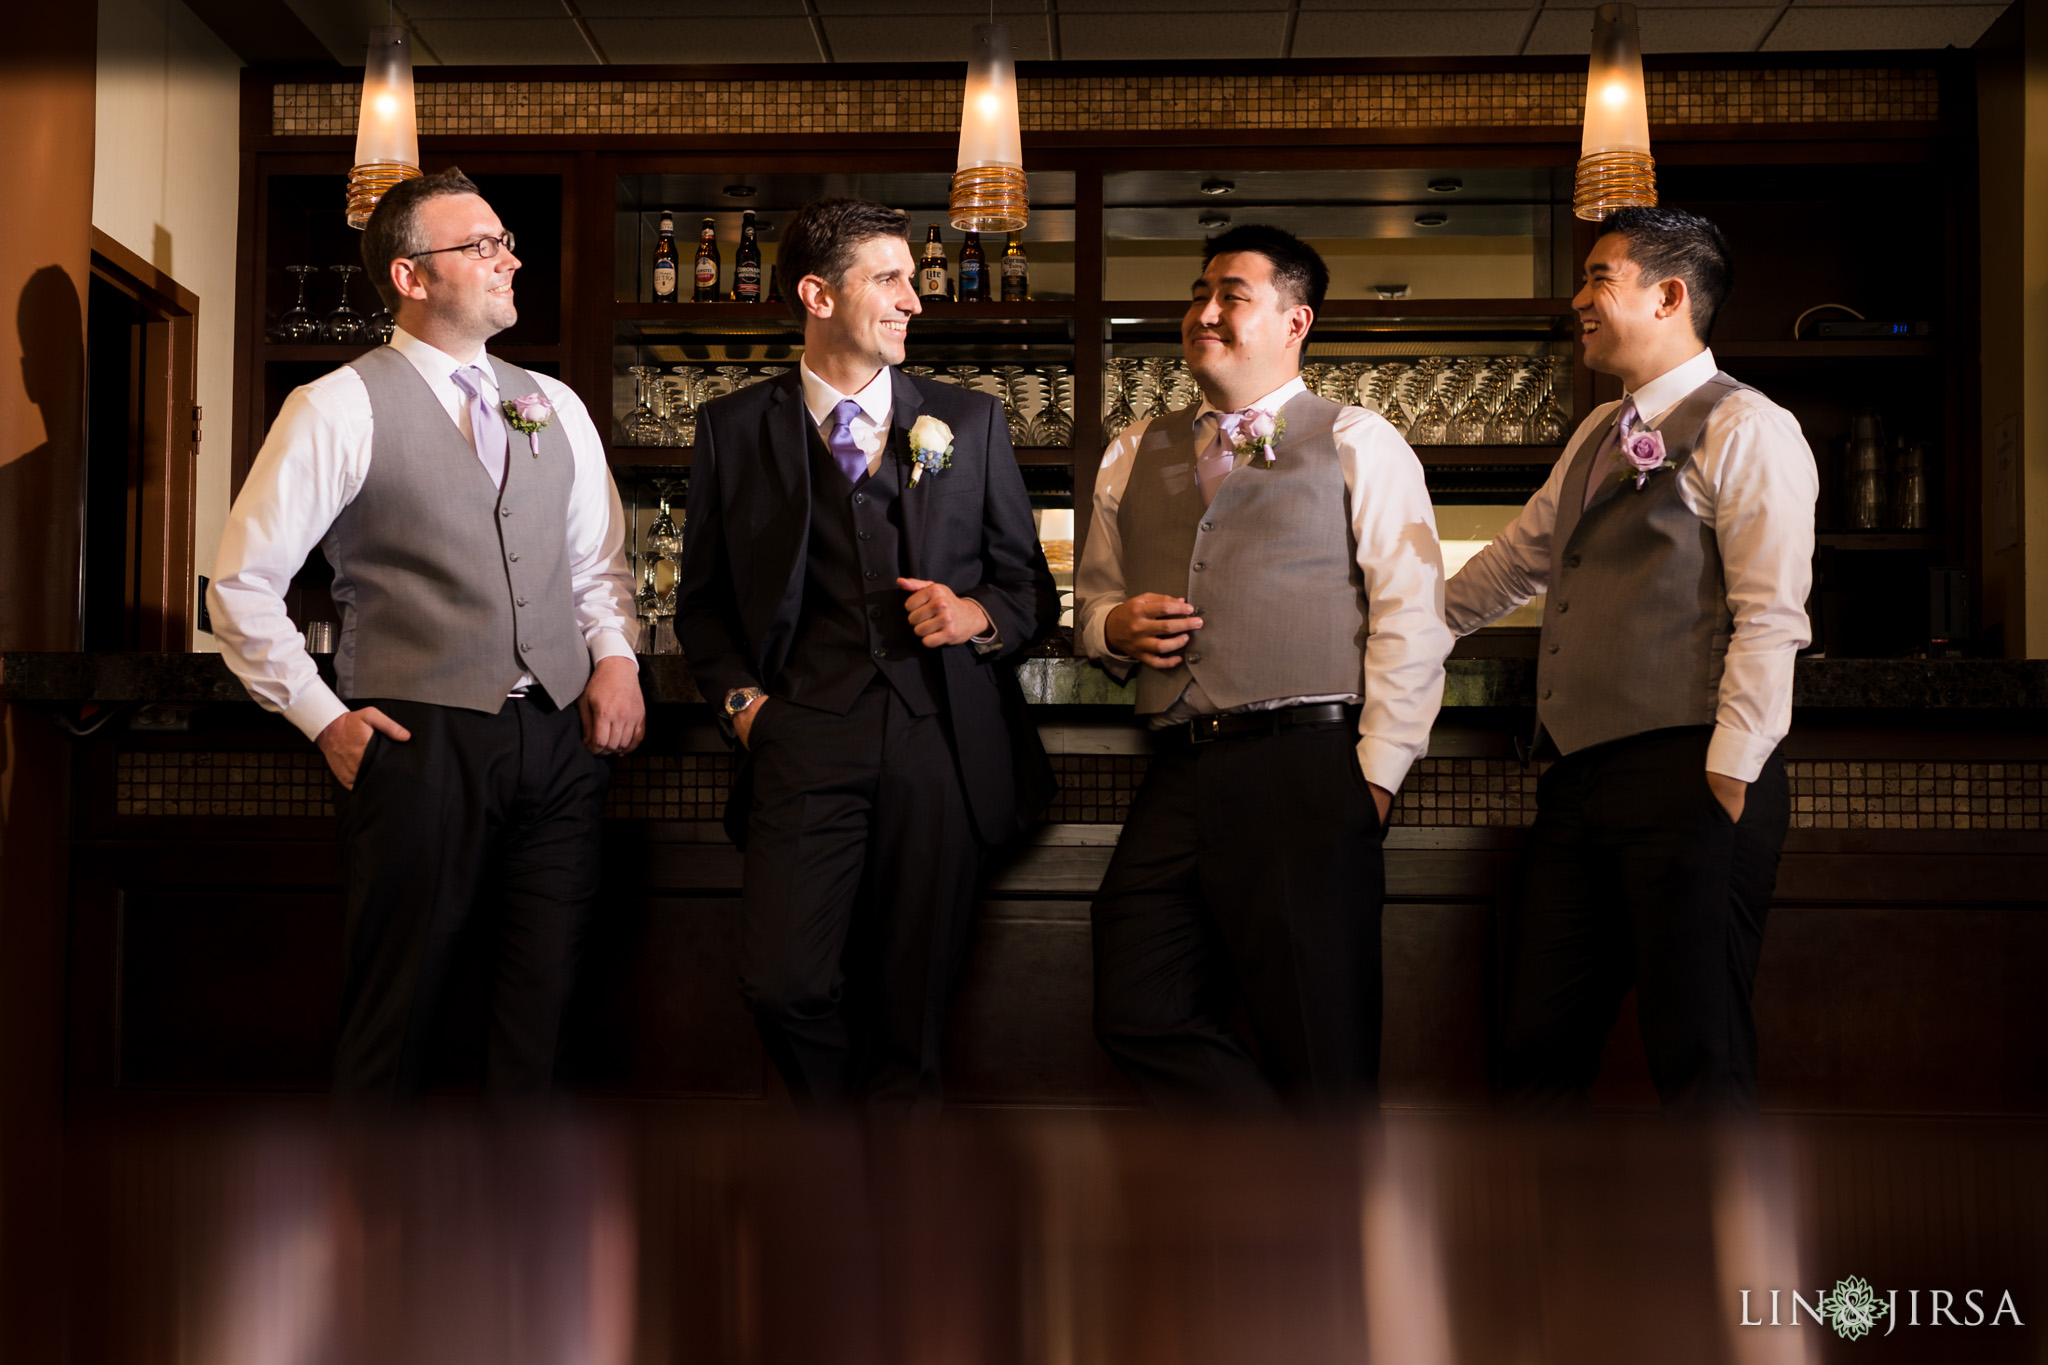 09 seacliff country club huntington beach groomsmen wedding photography